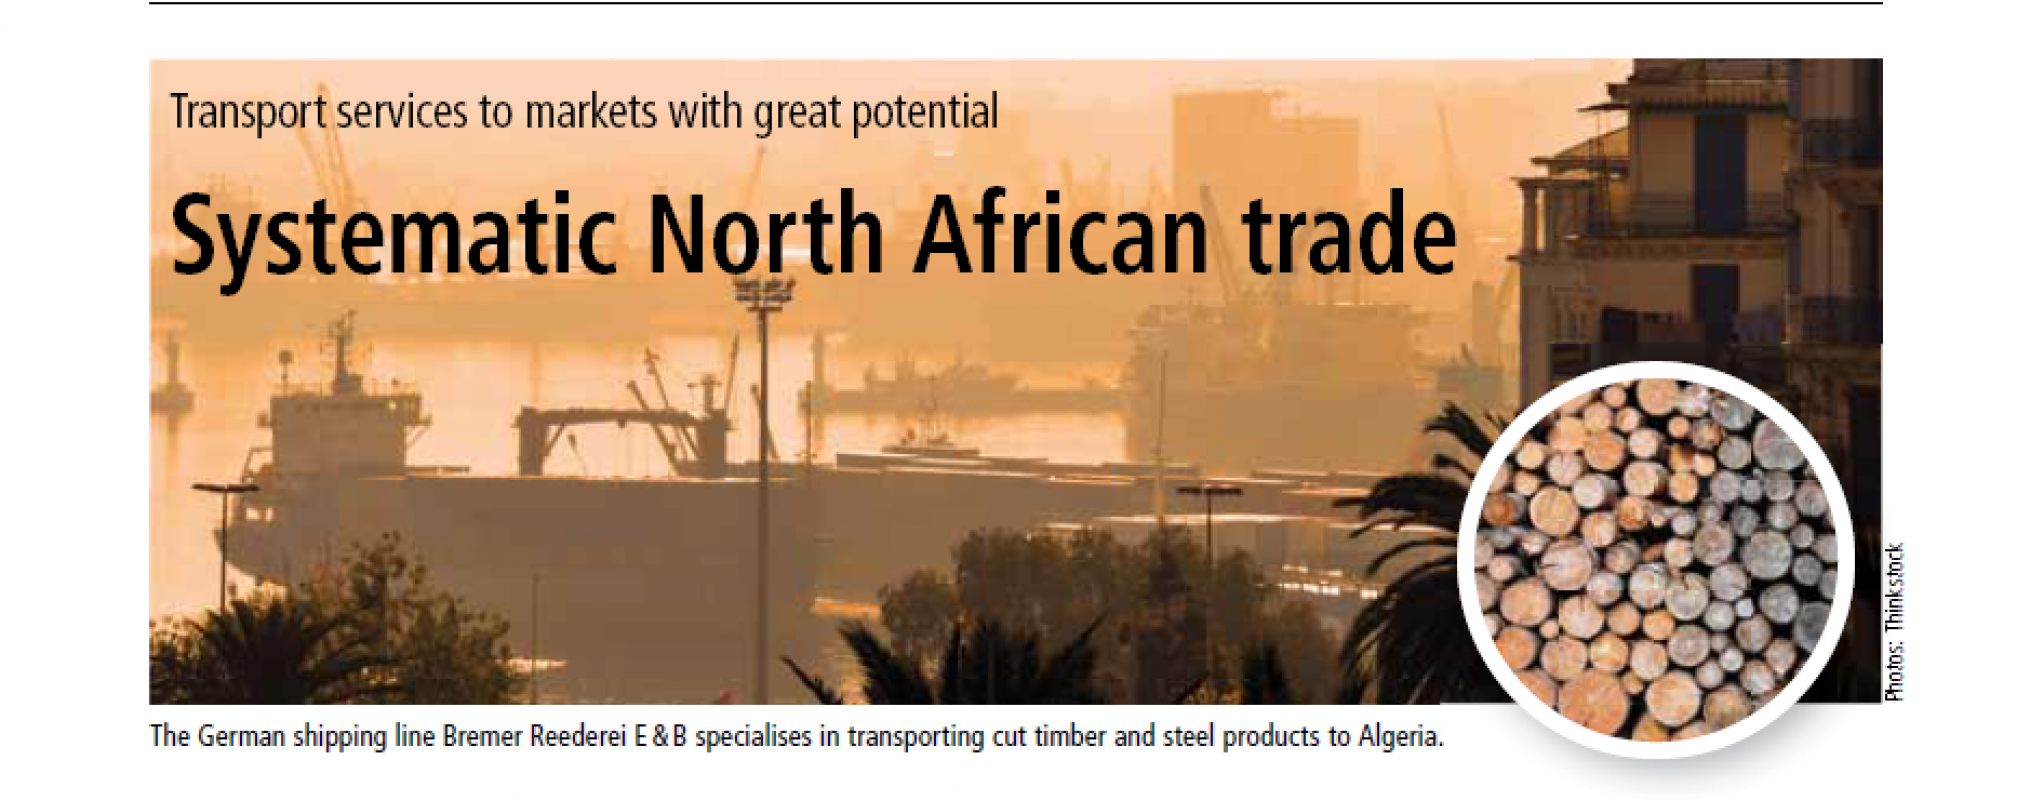 Systematic North African trade